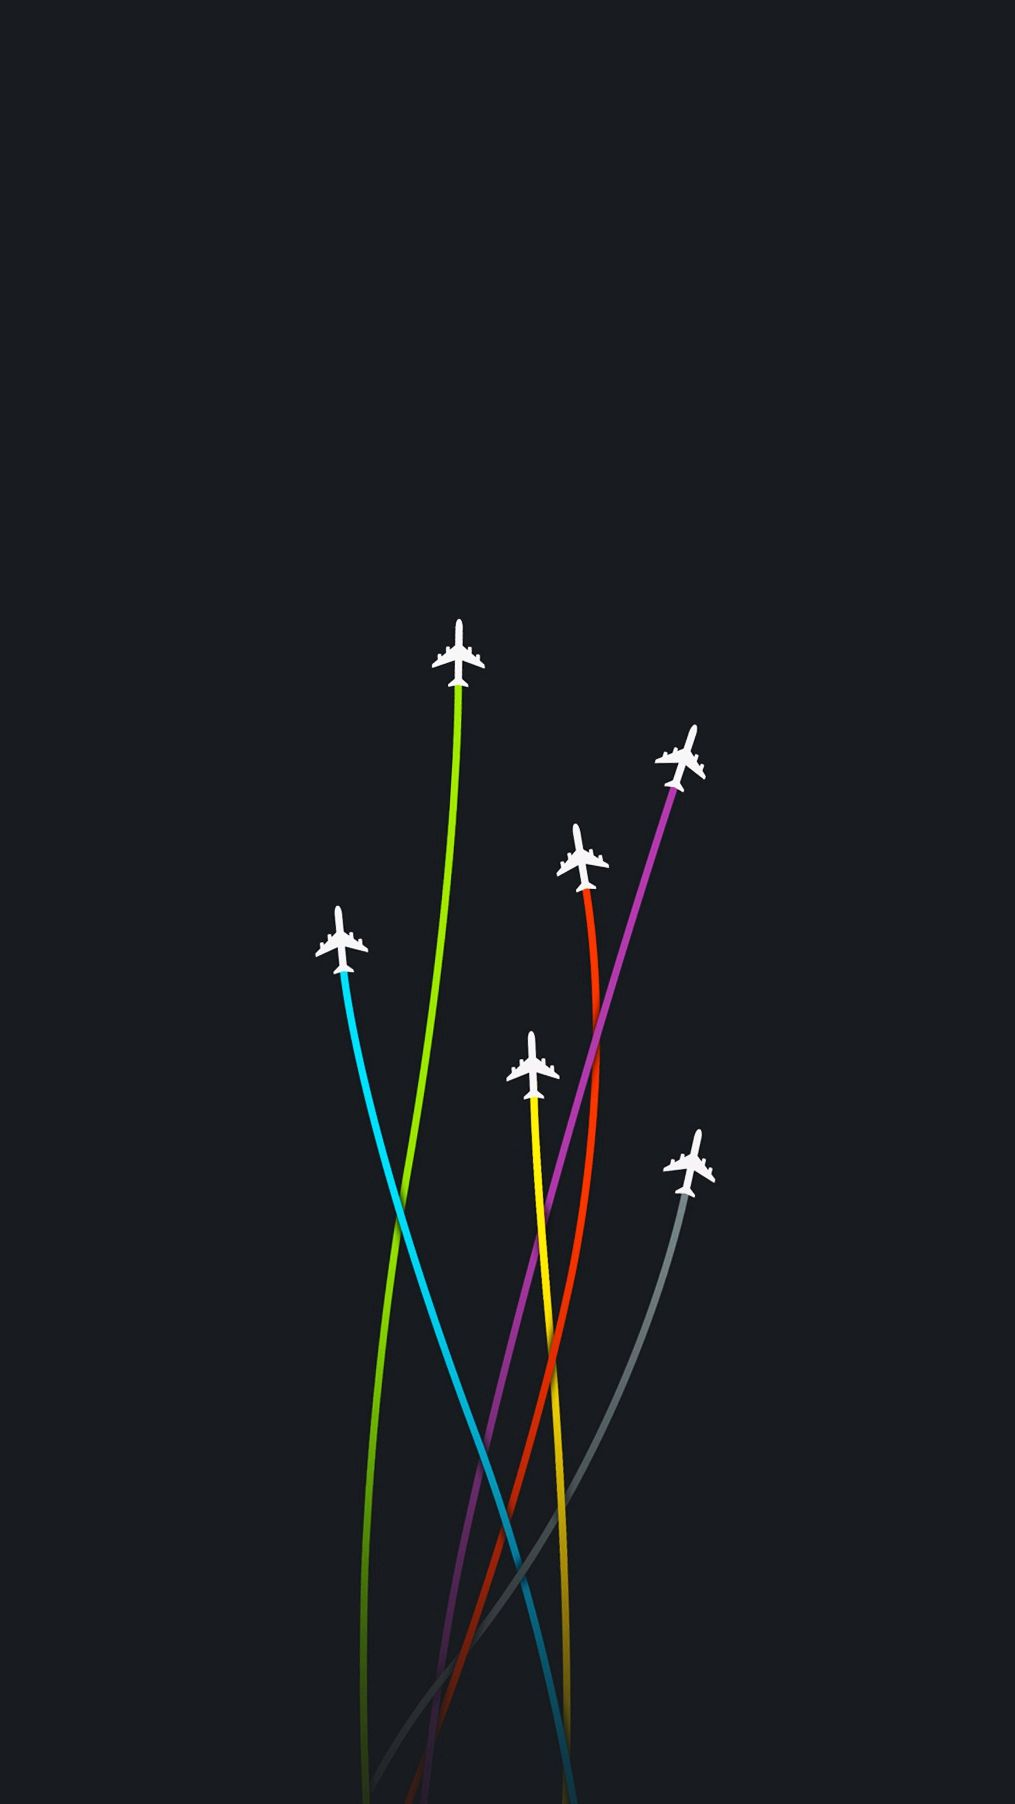 Minimal Planes Artwork iPhone Wallpaper iphoneswallpapers com